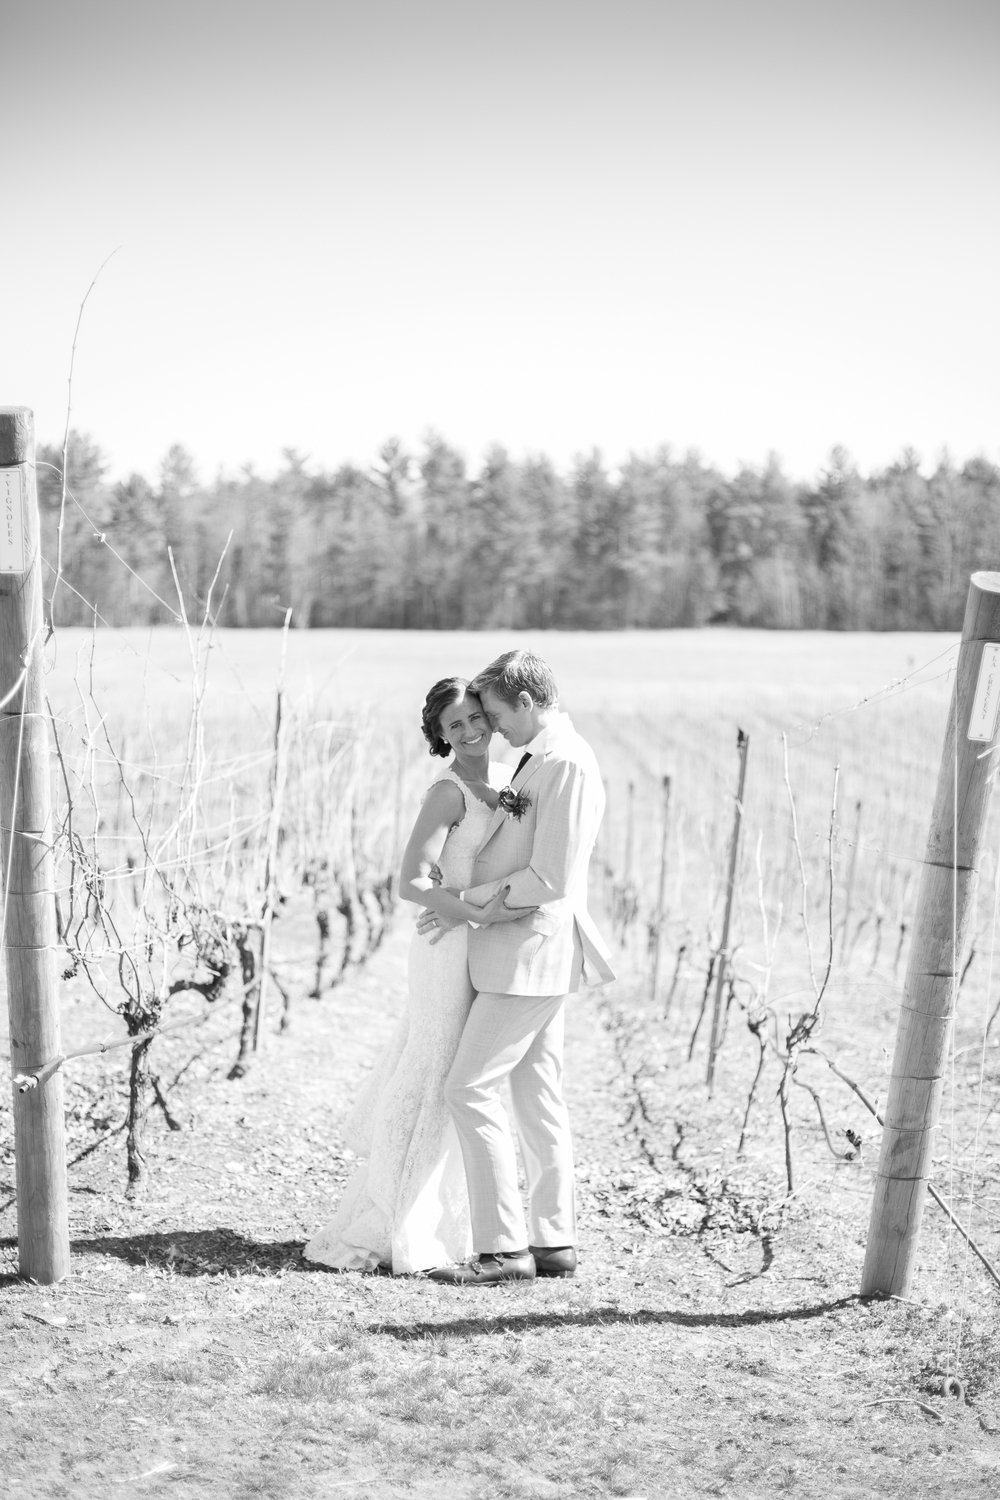 Seacoast New Hampshire Wedding Photographer | flag hill winery and distillery wedding venue | lee, nh | amy brown photography